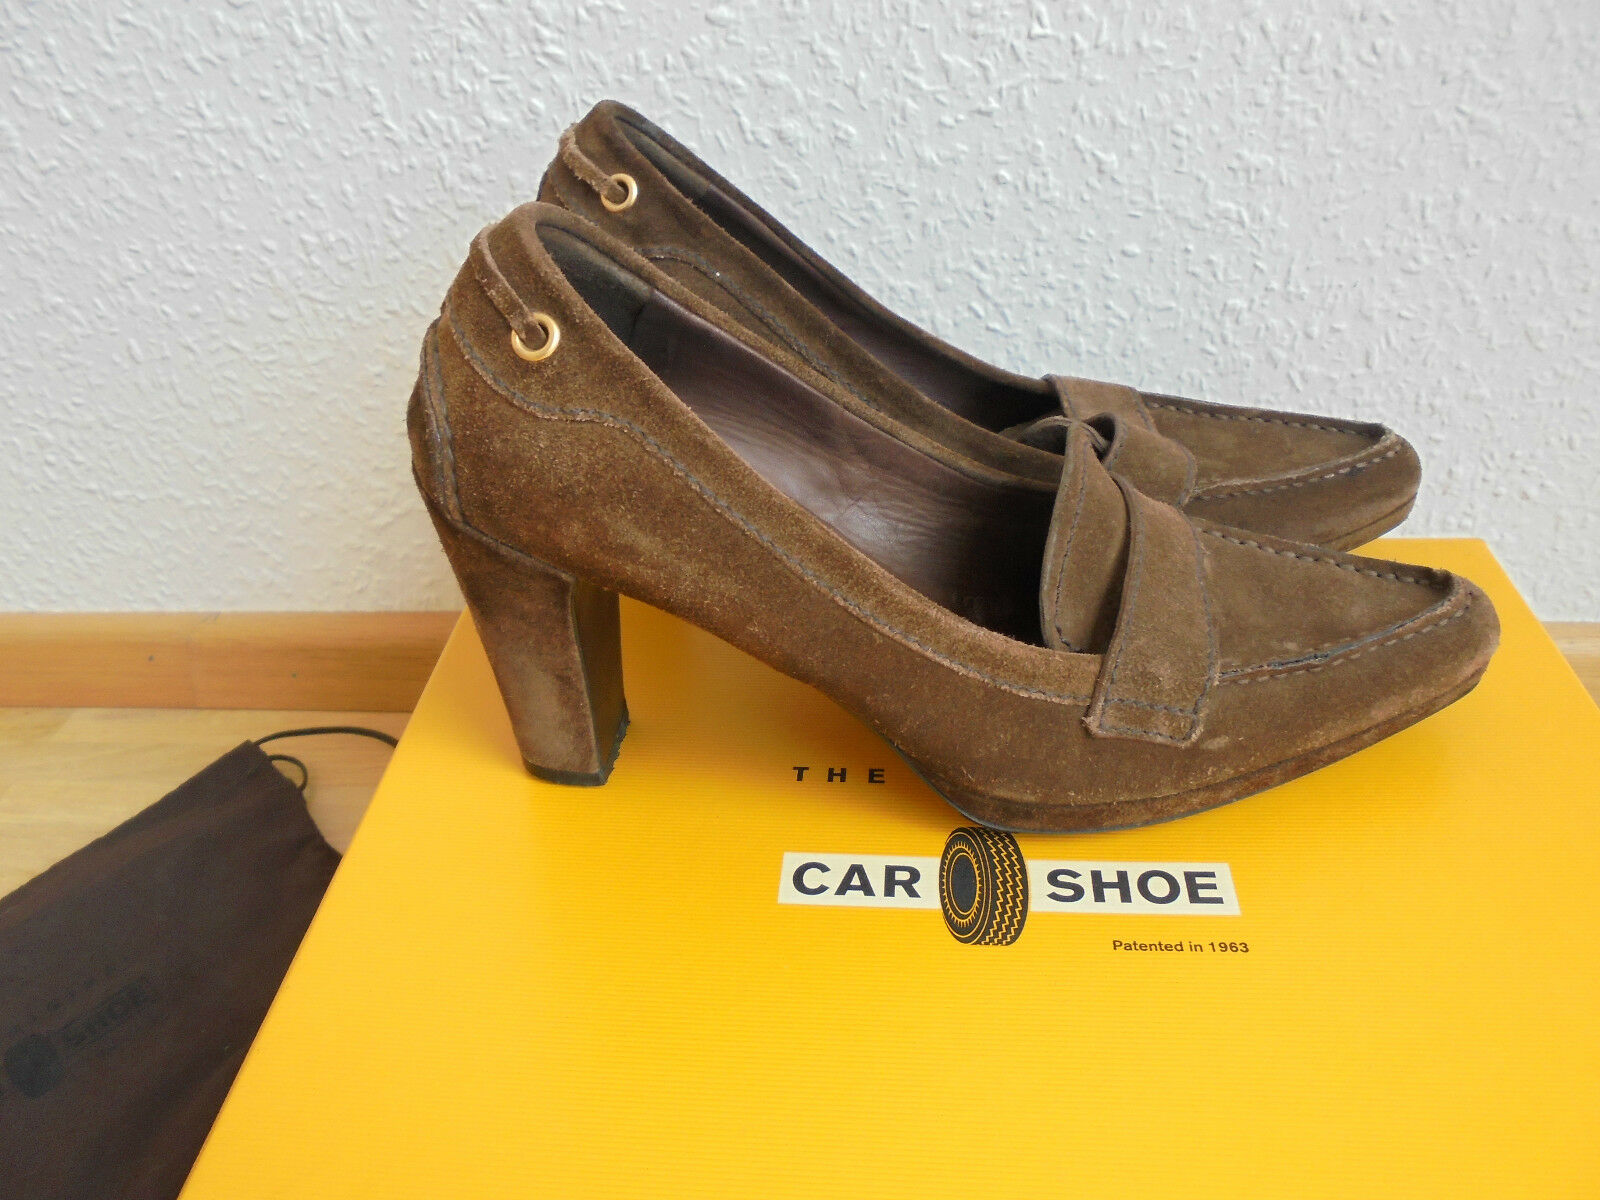 Feine Car Schuhe by Prada Wildleder Pumps NP:  TOP High Heels Schuhe Gr. 36